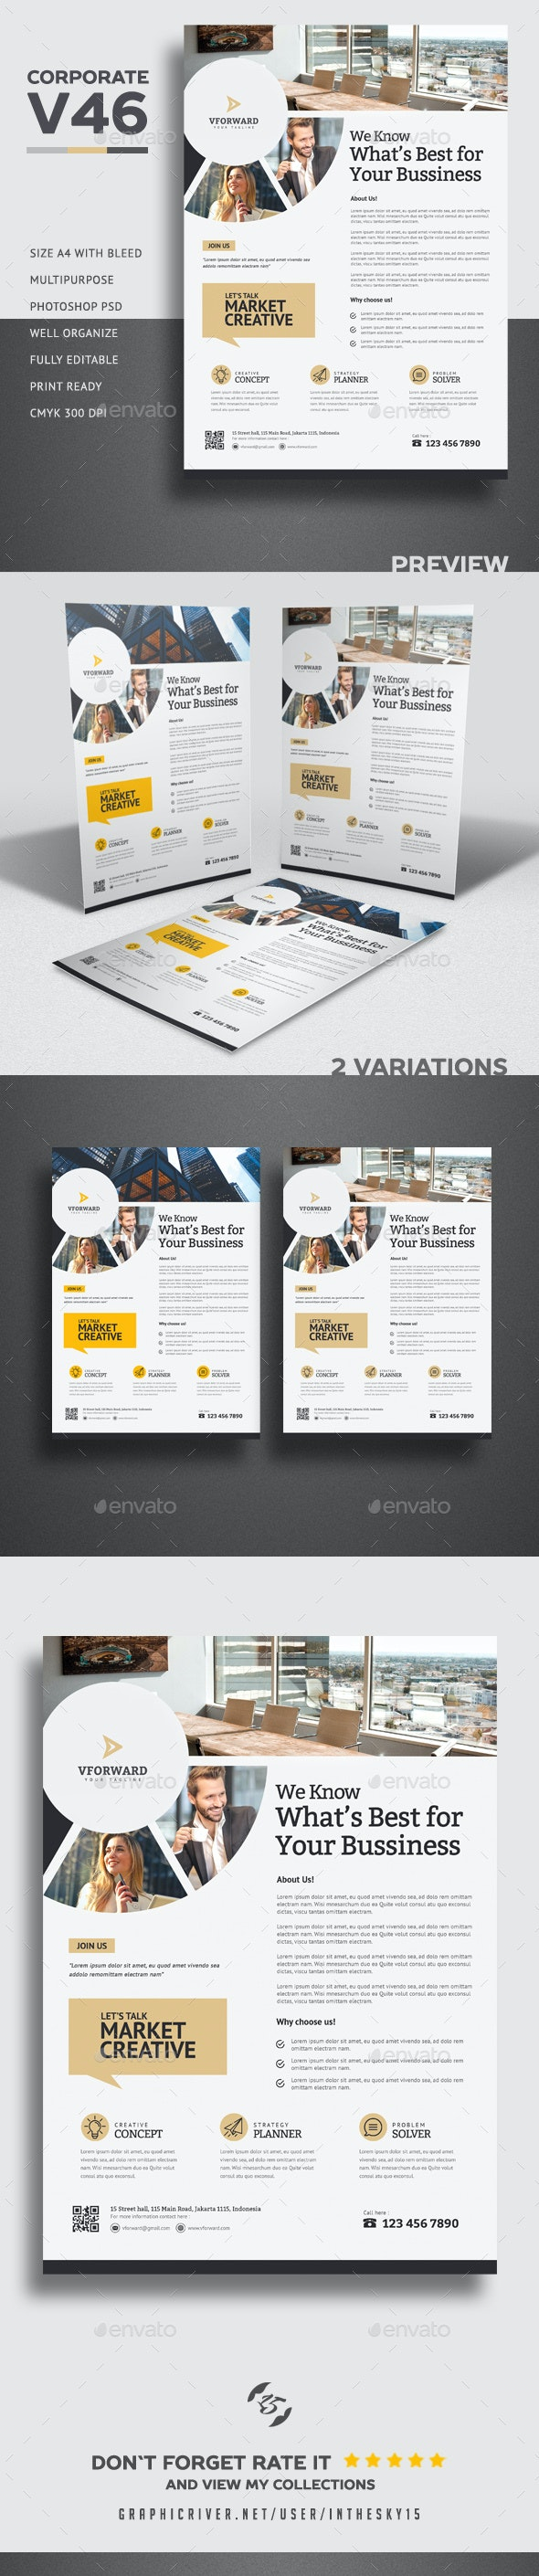 Corporate V46 Flyer - Corporate Flyers